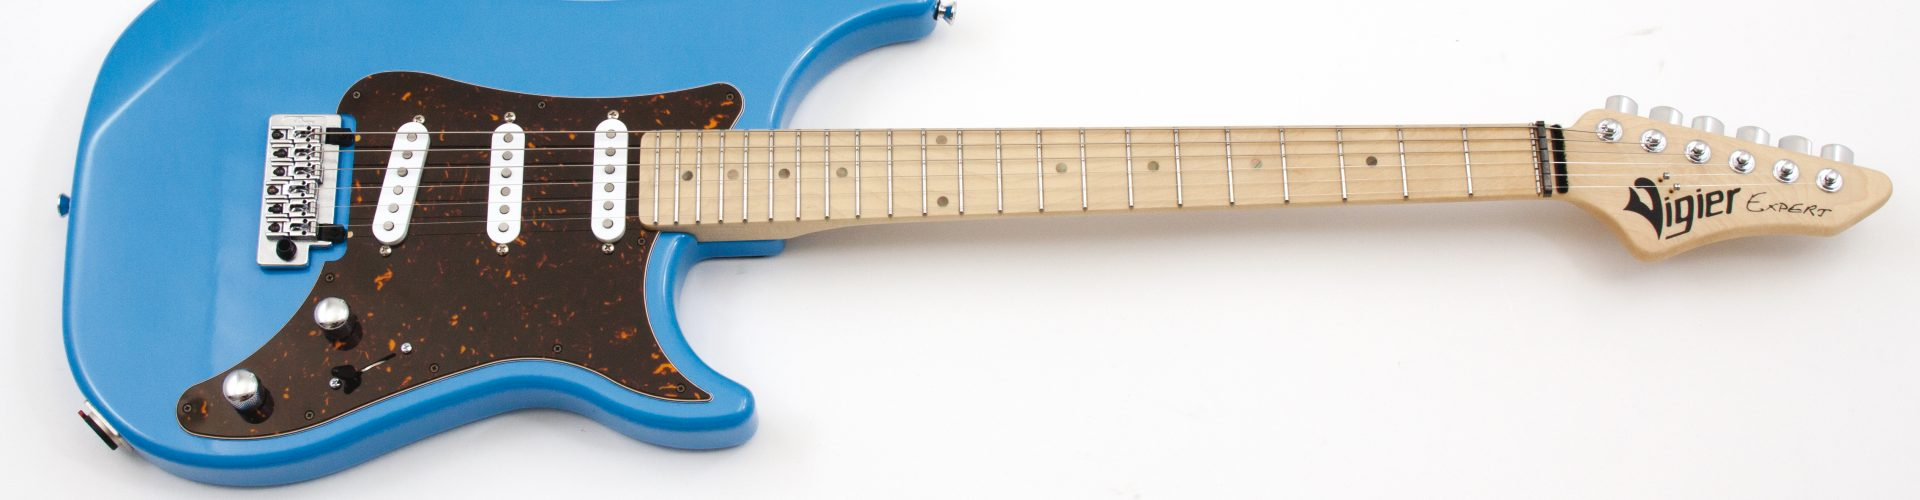 Vigier Expert Classic Rock – Blue Magic Woman